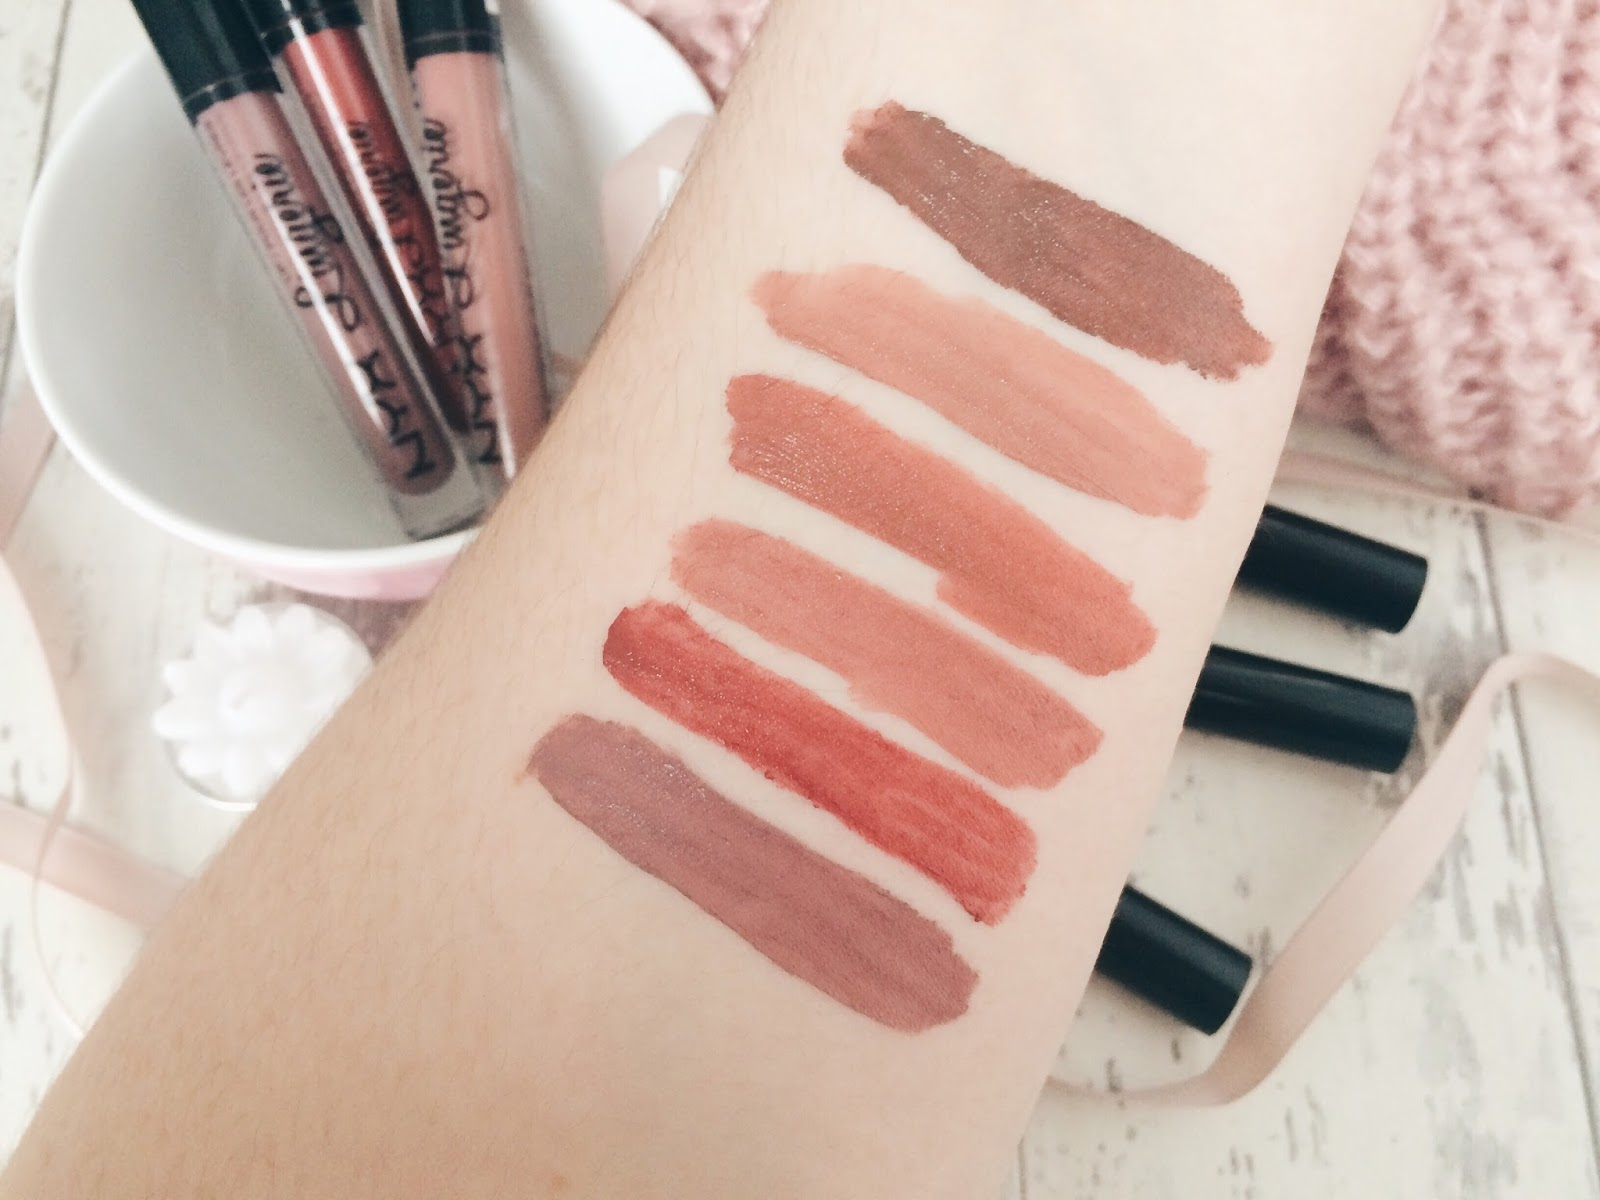 Image of NYX Lip Lingerie Liquid Lipstick Swatches